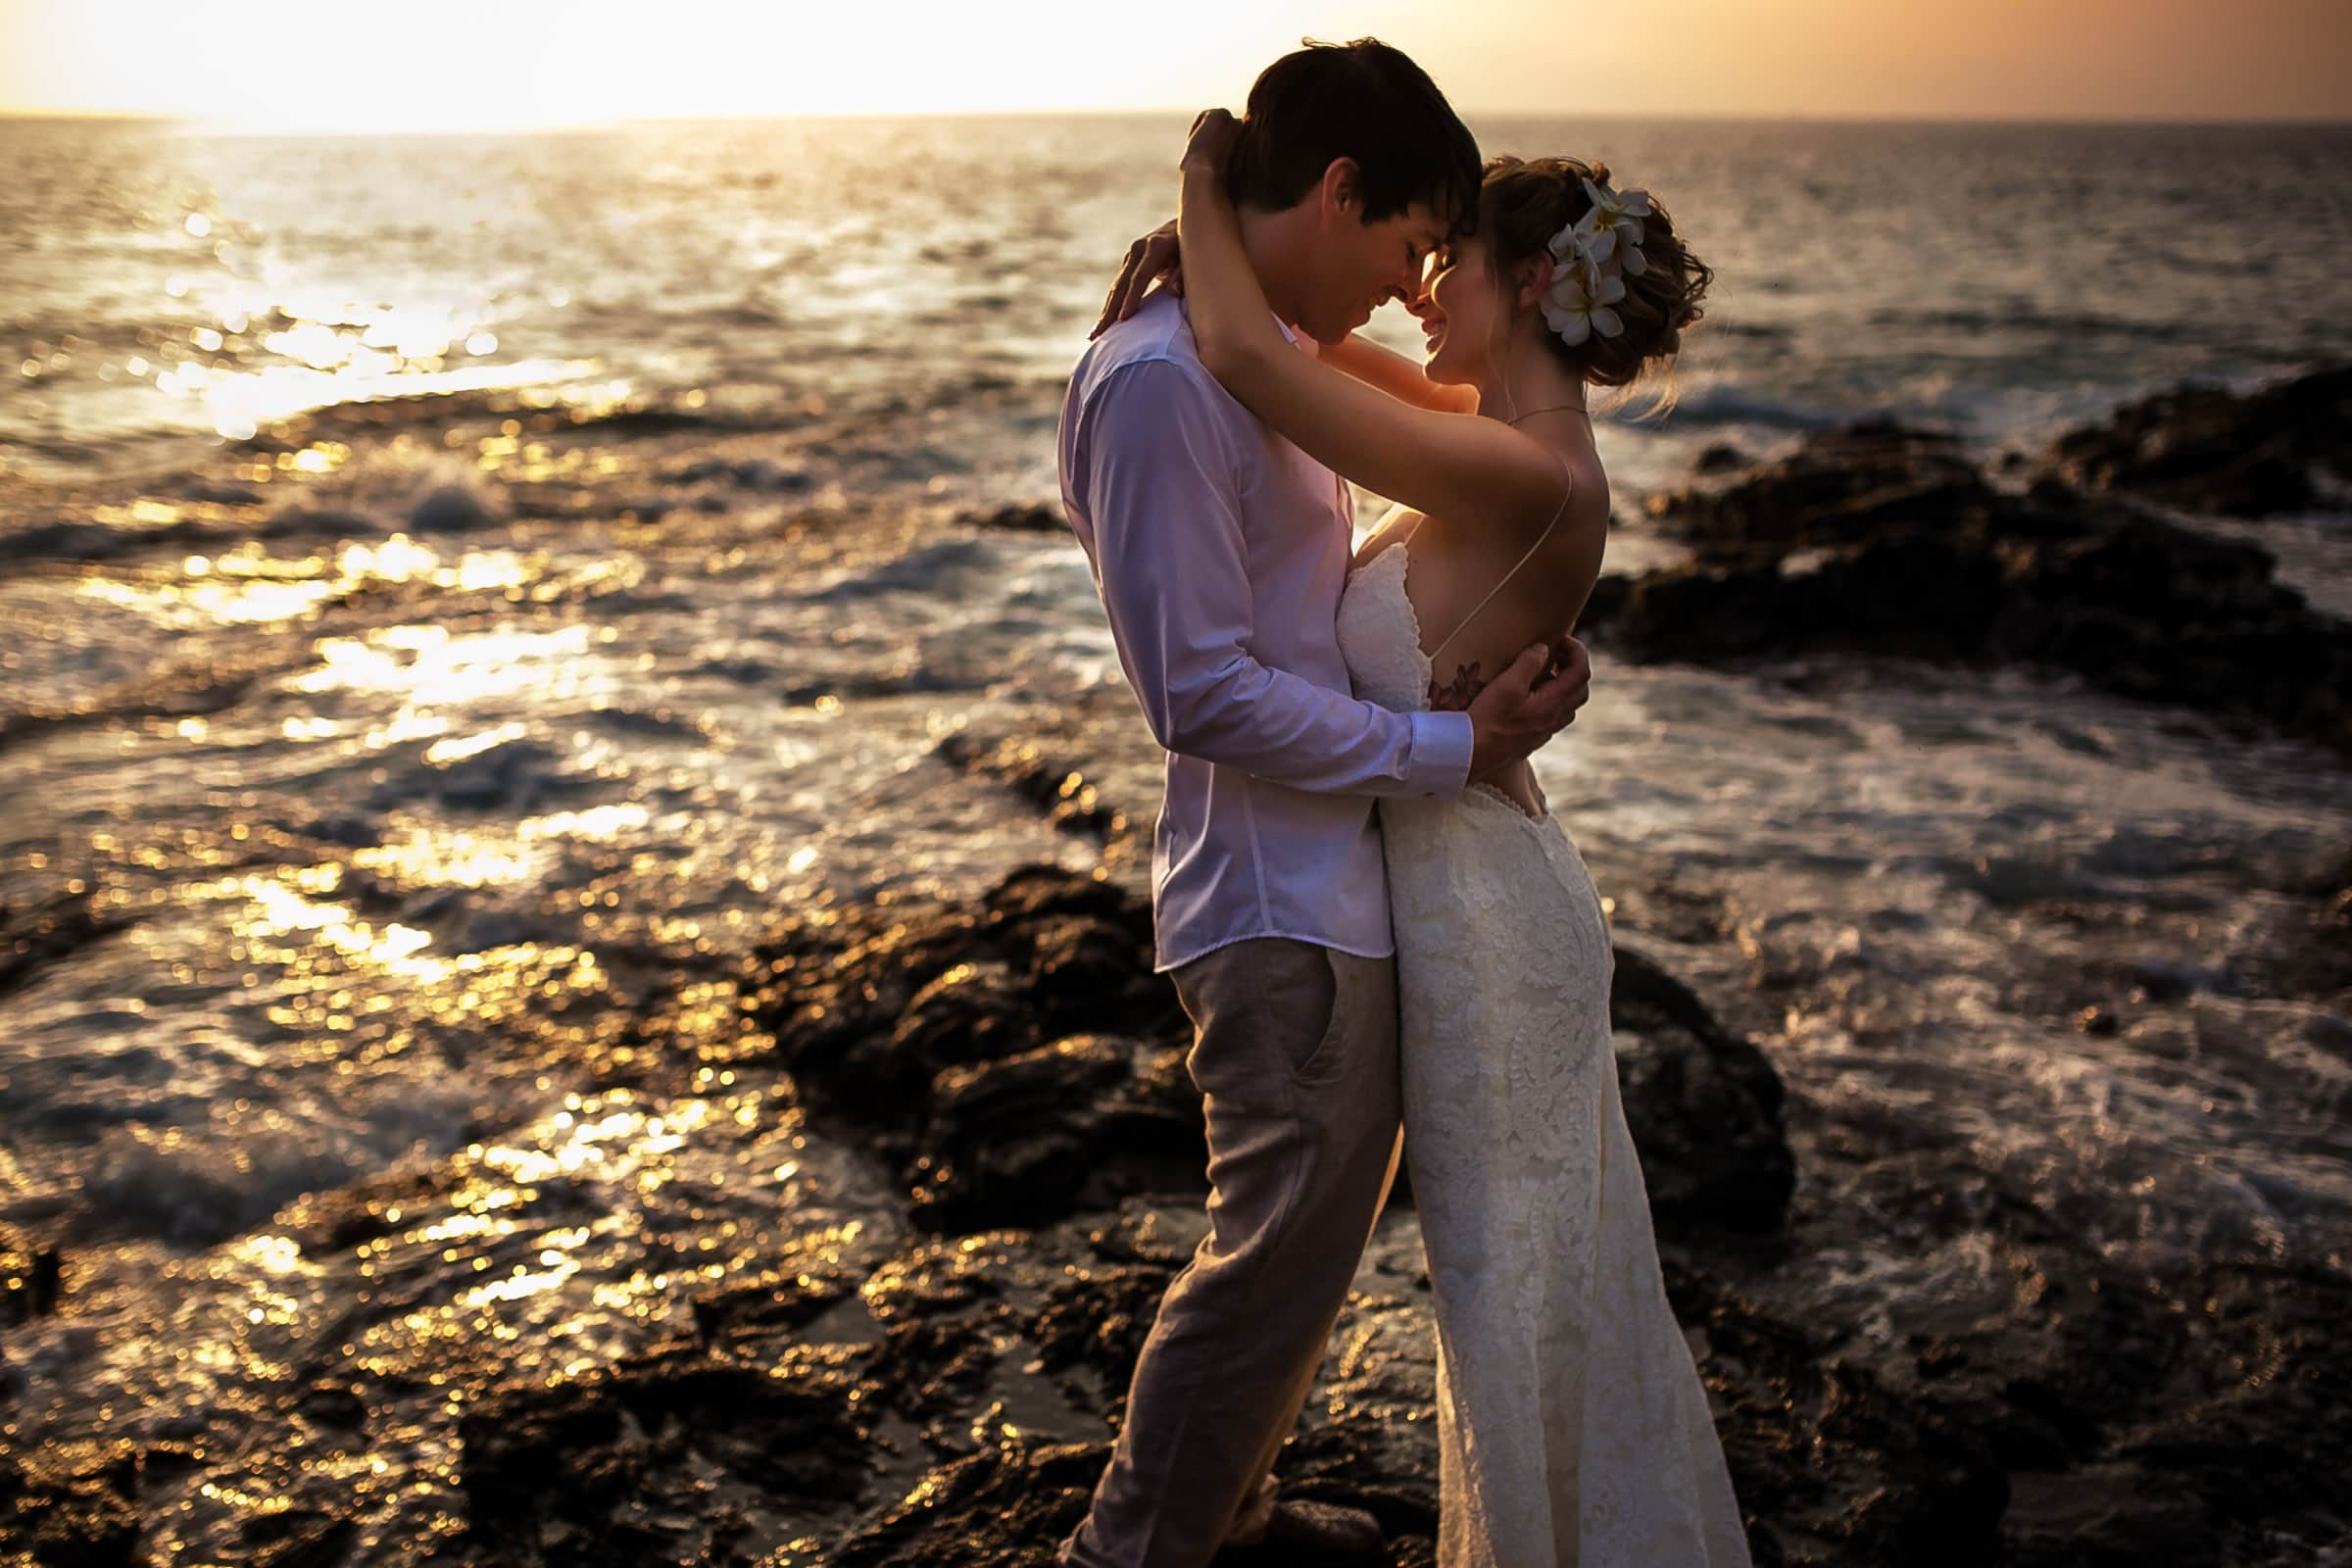 Bride and groom embracing near the ocean during a warm lit sunset during their Kailua Kona Wedding at the Kona Beach Bungalows on the Big Island of Hawaii